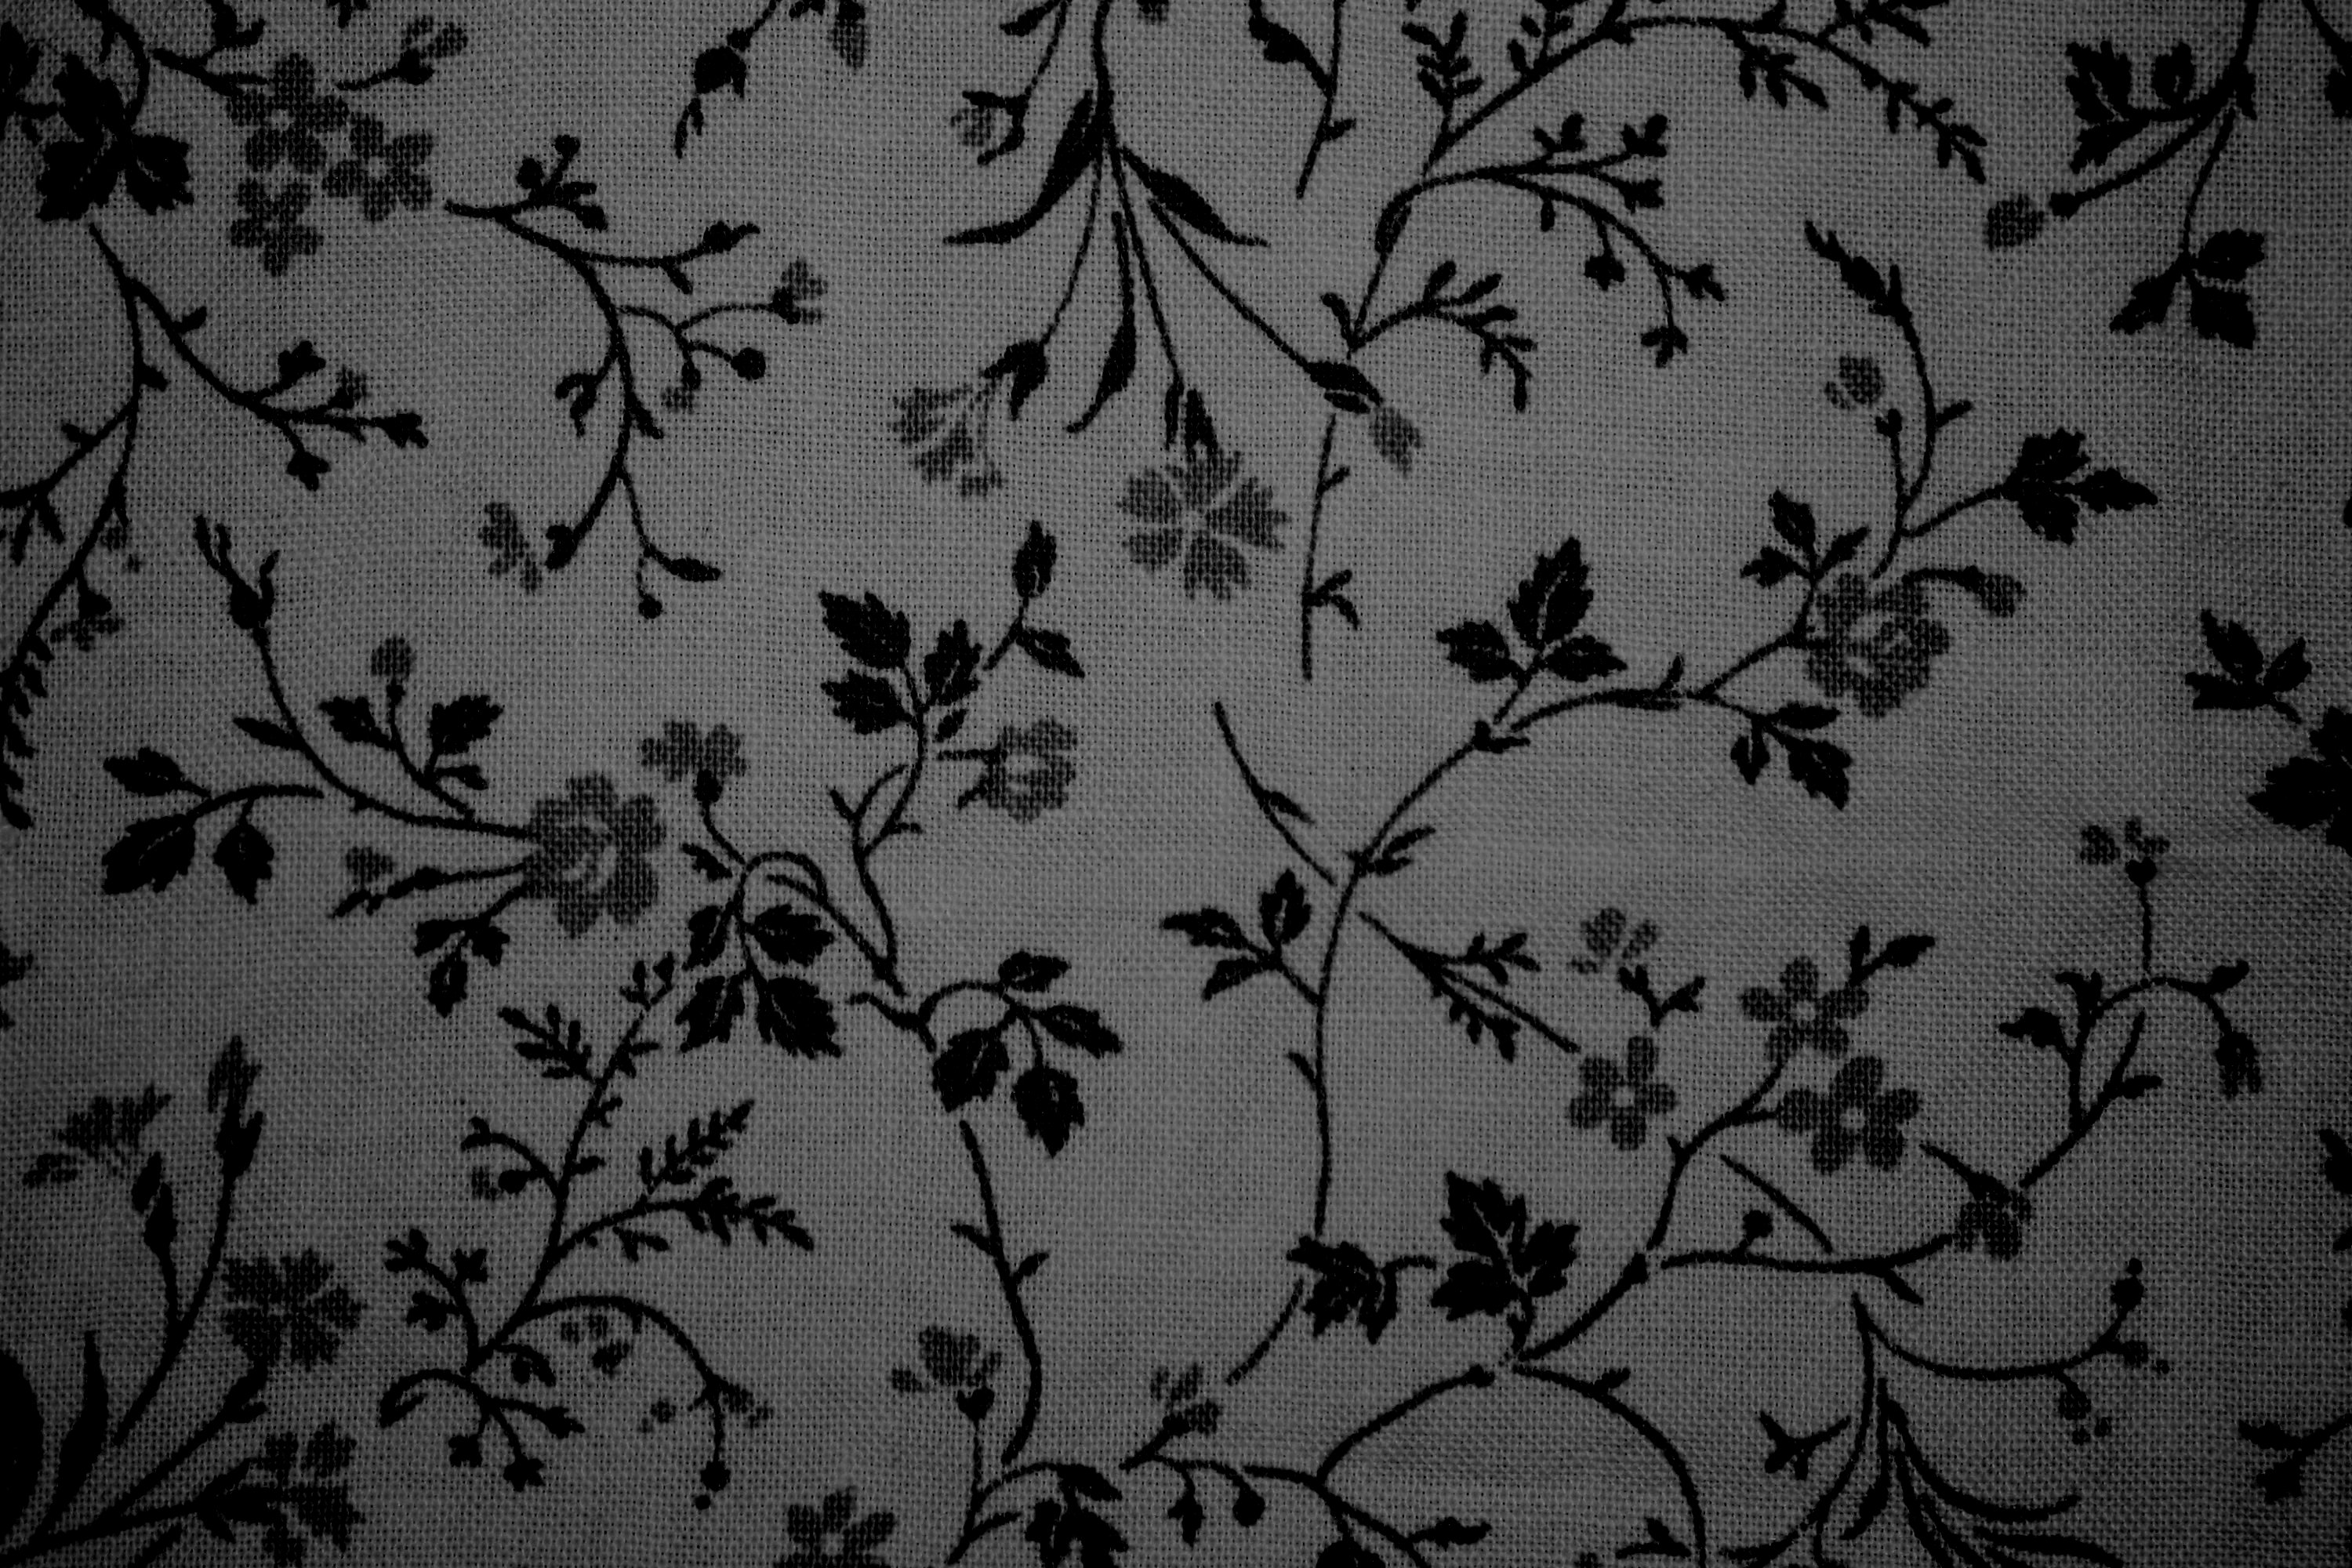 Black on Gray Floral Print Fabric Texture Picture | Free ...